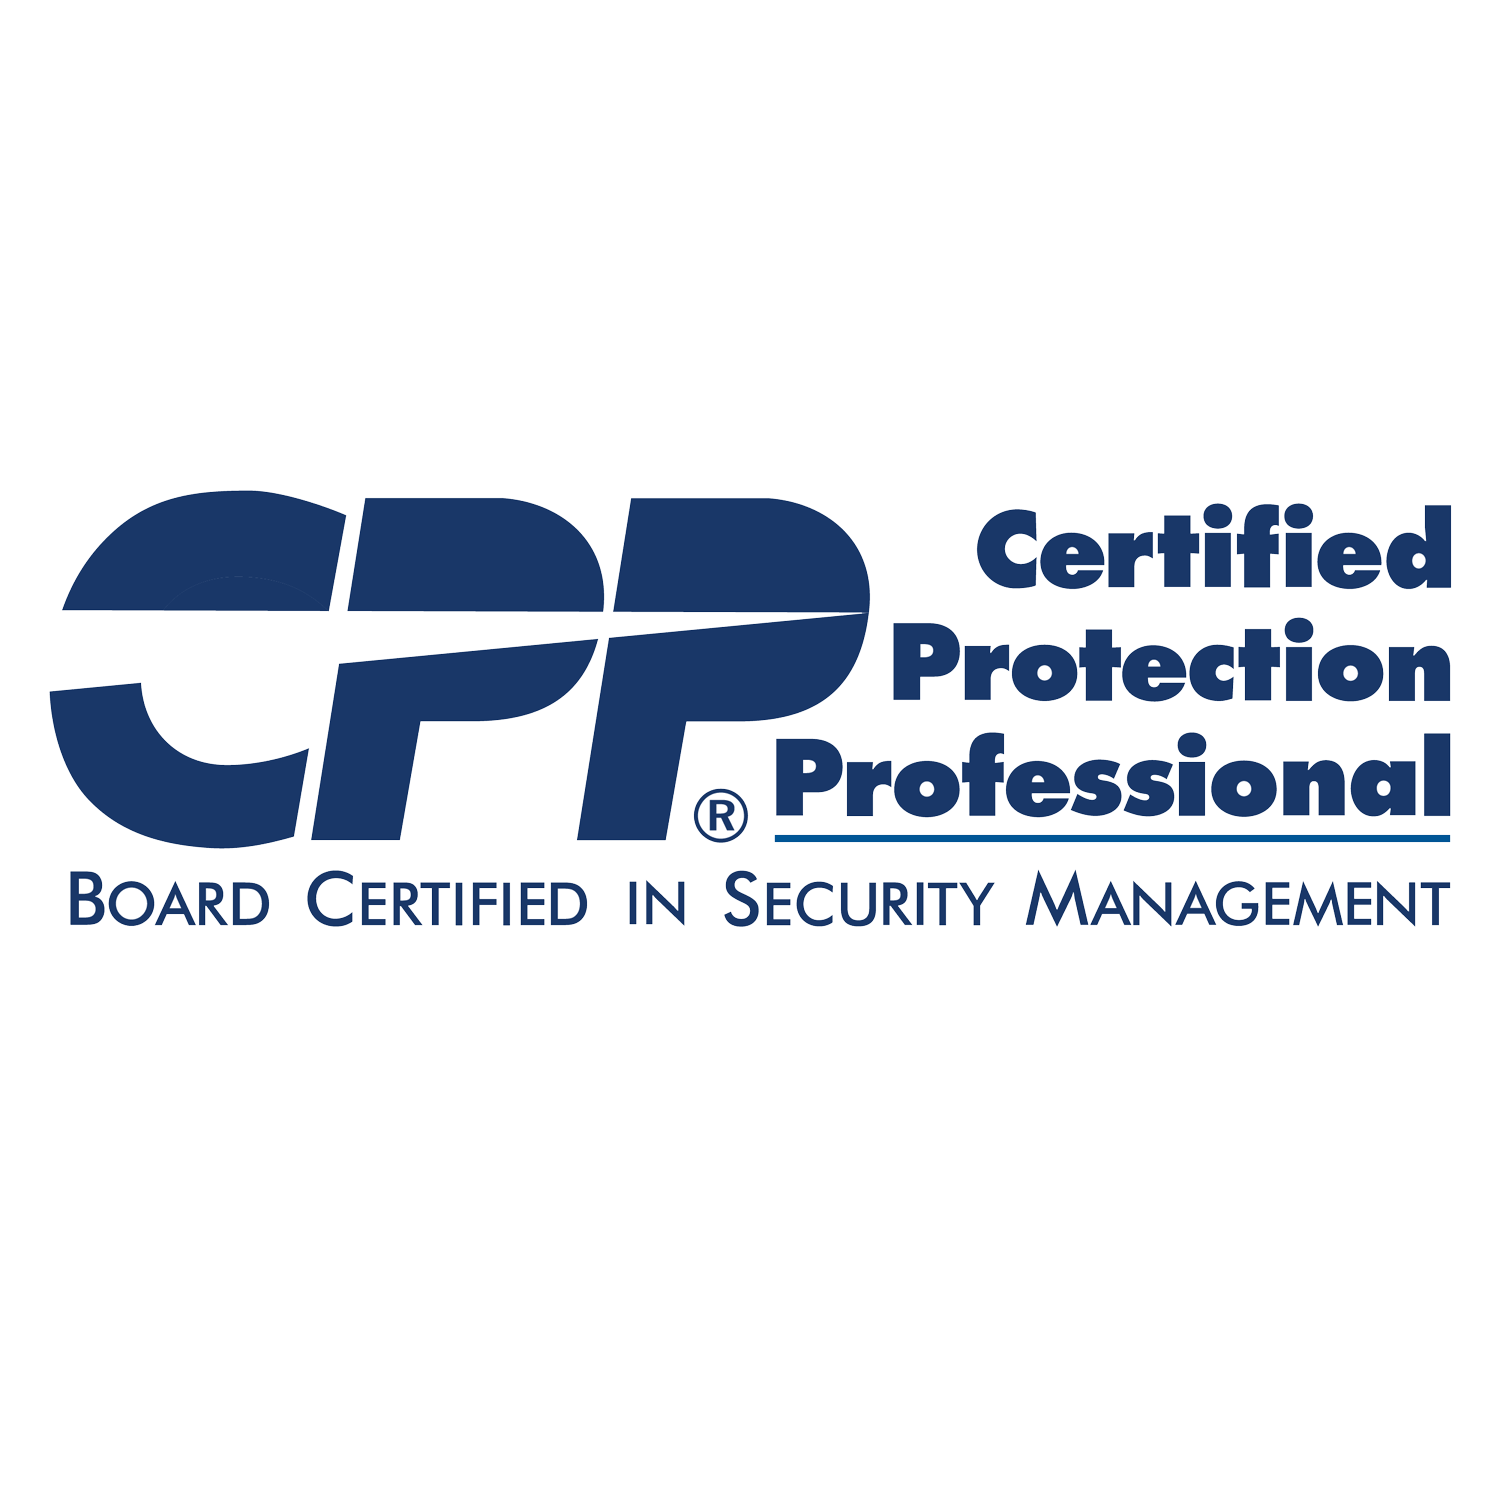 Certified Protection Professional (CPP)